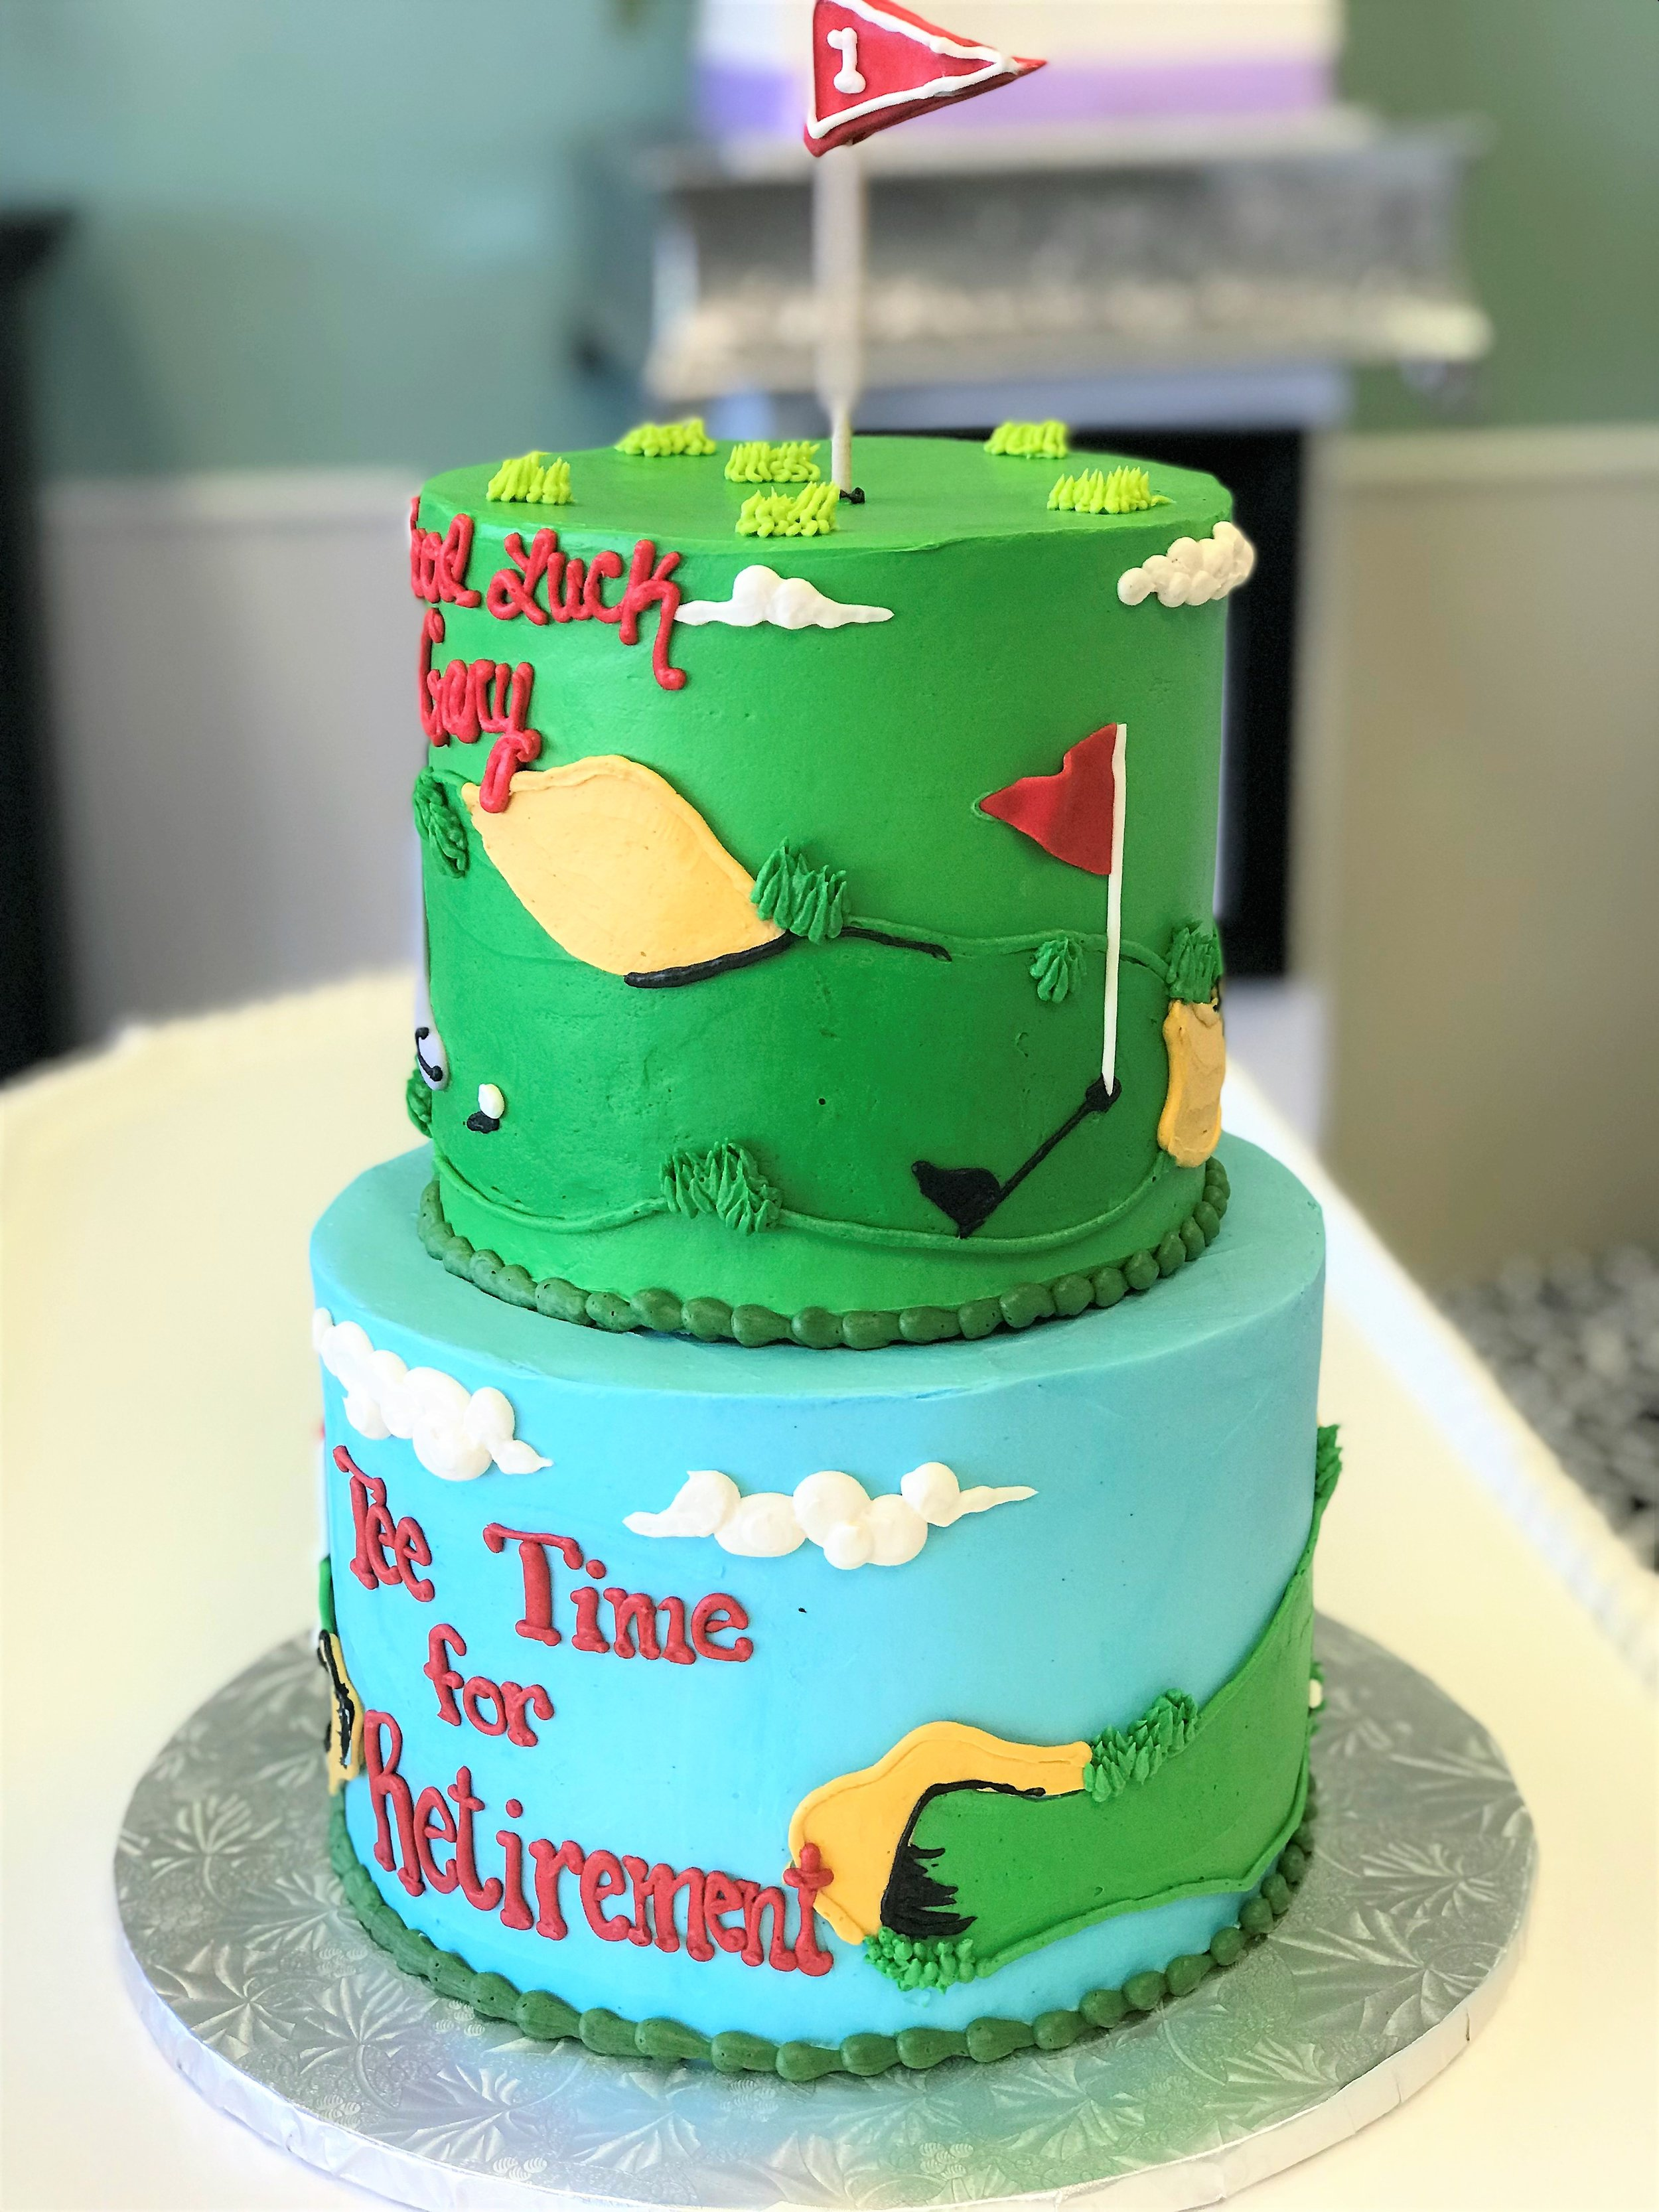 golf retirement two tiered cake.jpeg